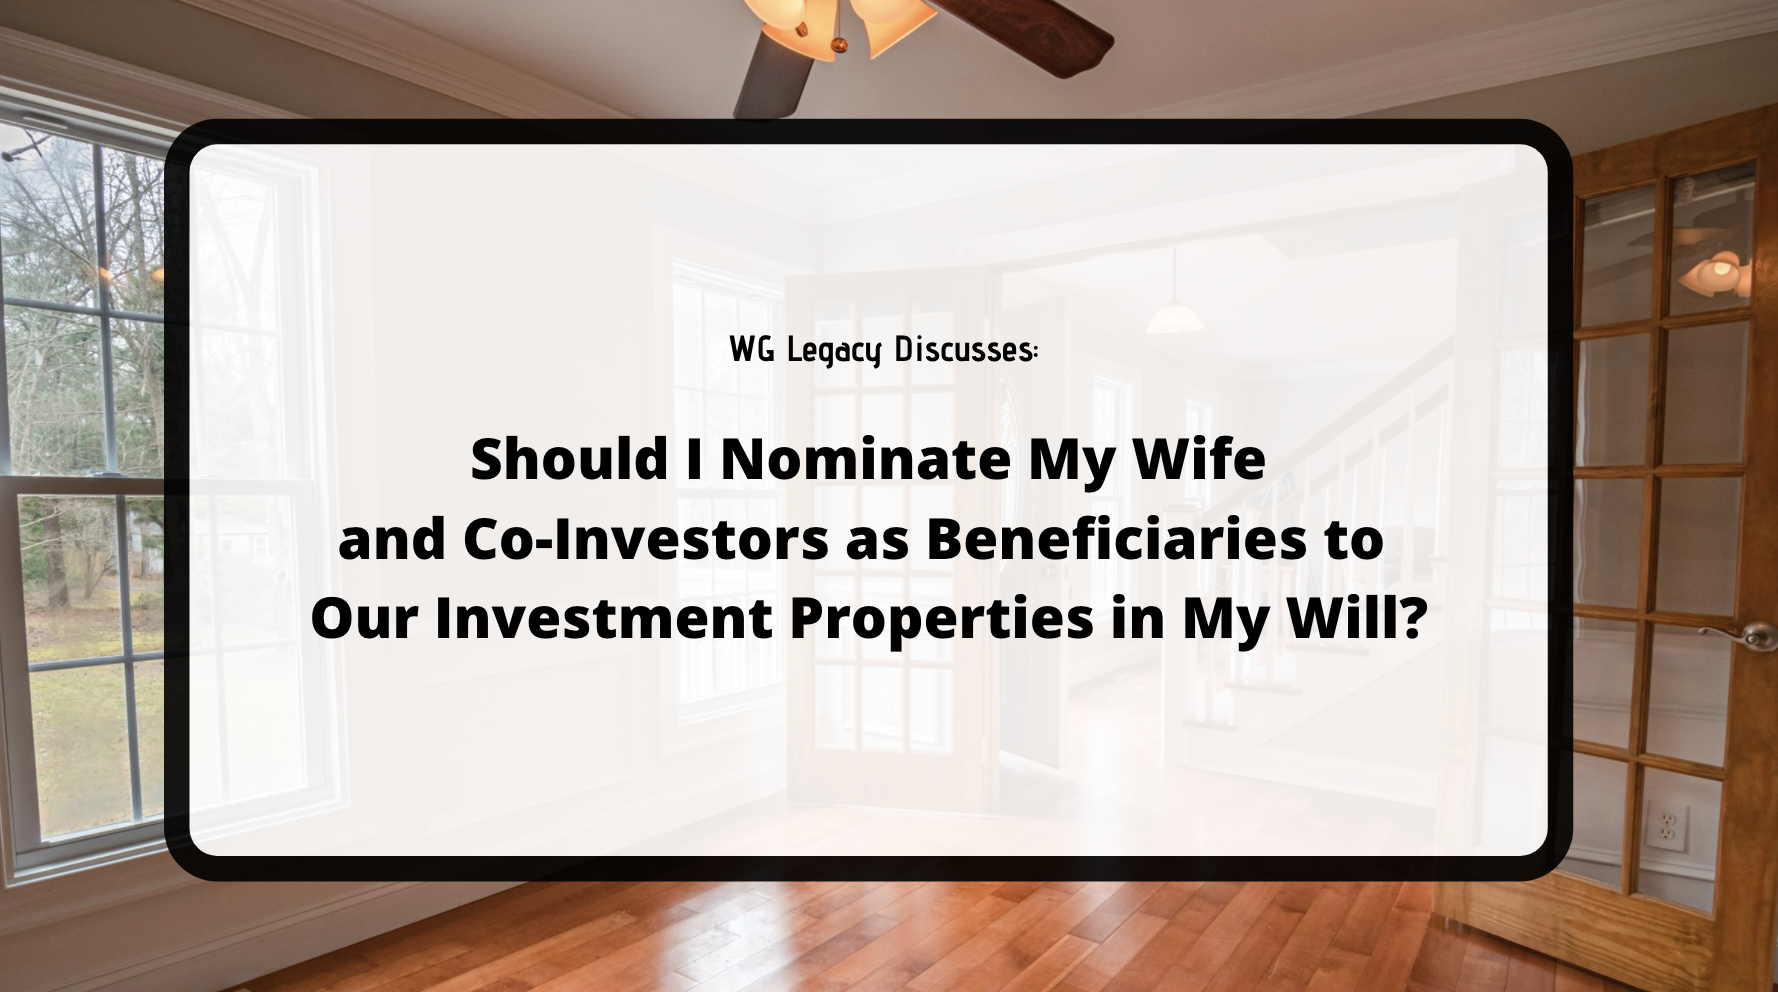 Should I Nominate My Wife and Co-Investors as Beneficiaries to Our Investment Properties in My Will?